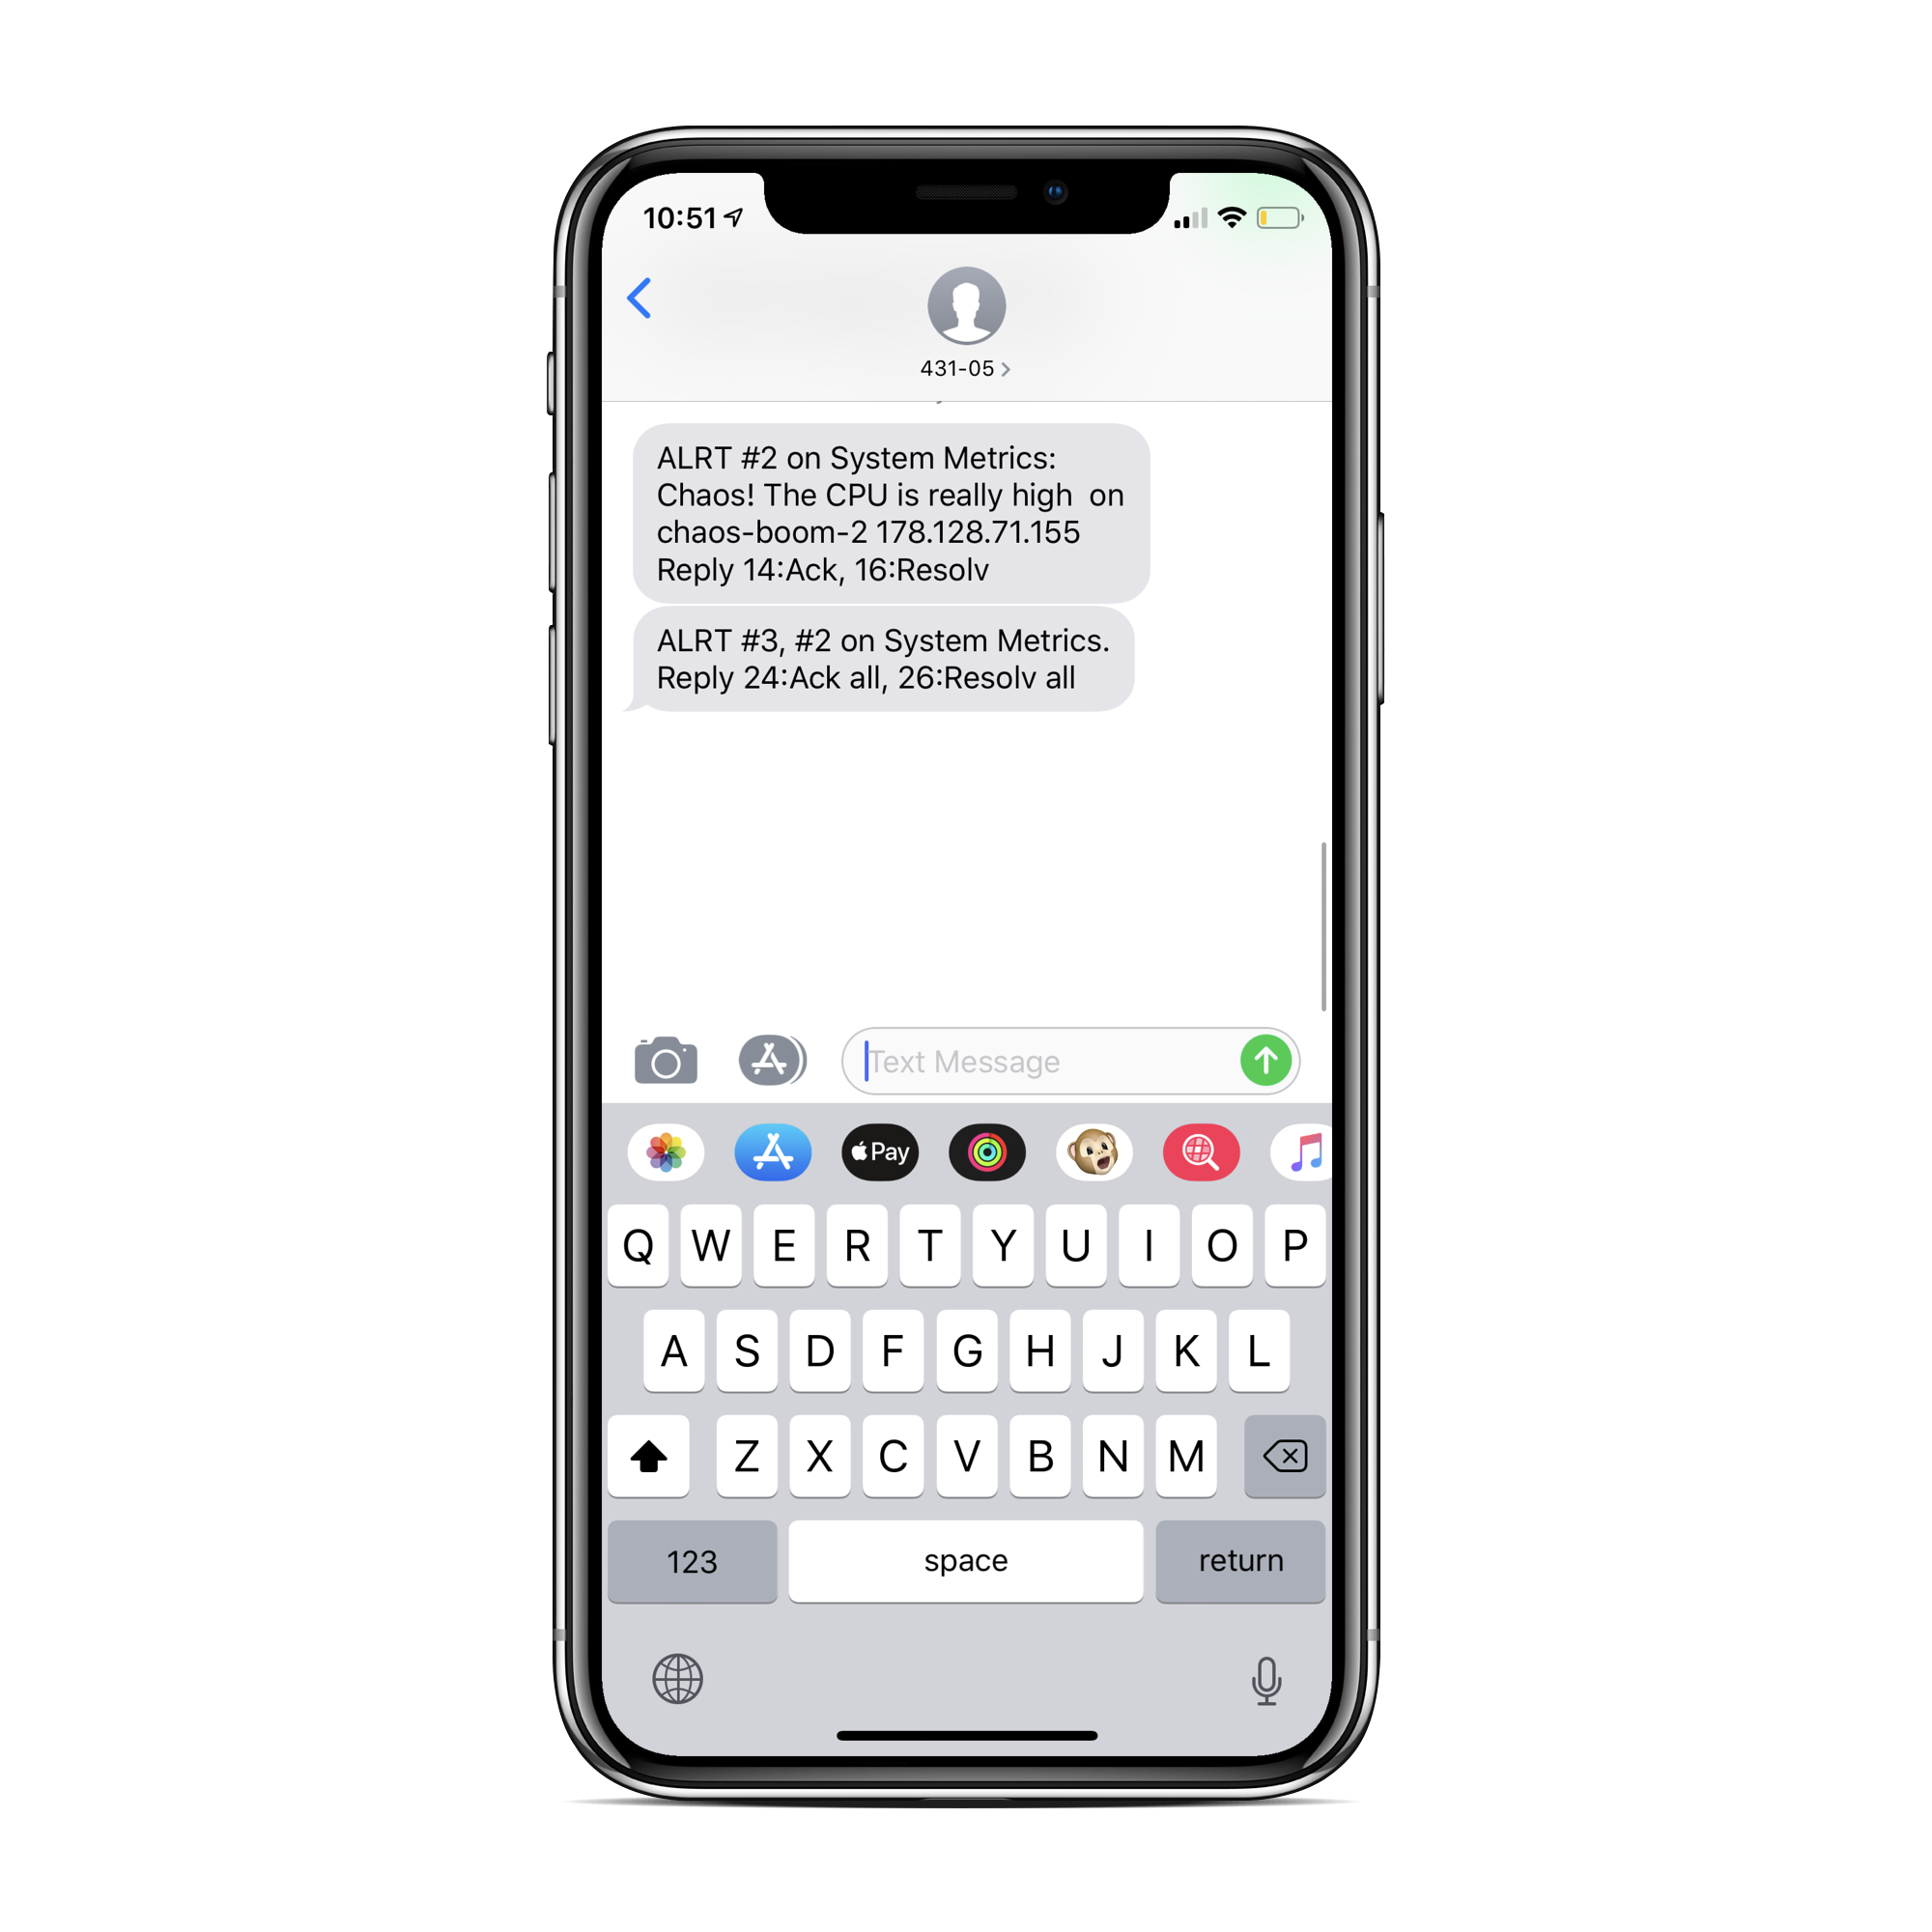 Text Message from PagerDuty Alert